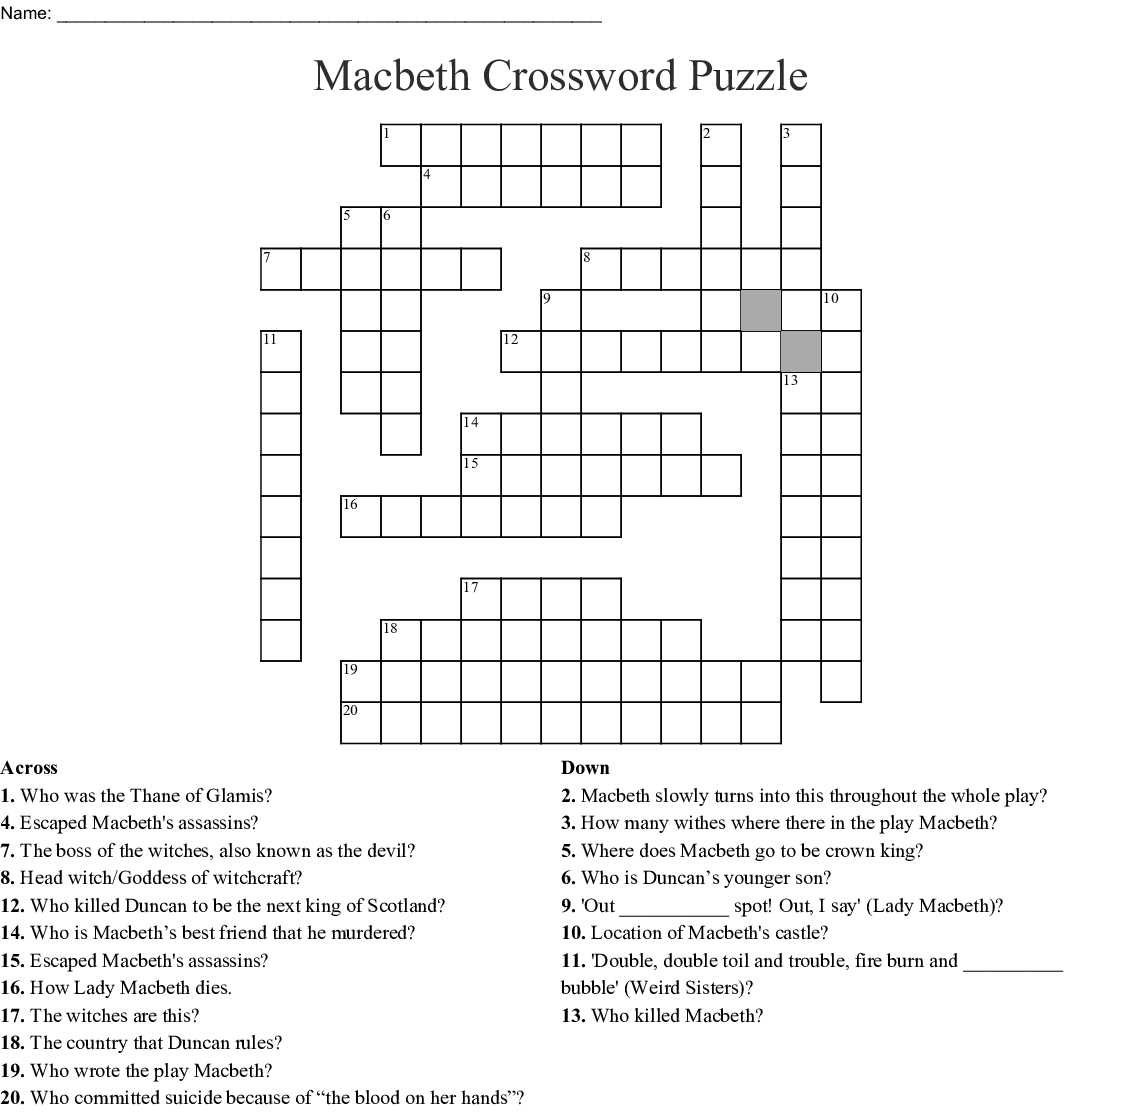 Macbeth Crossword Puzzle